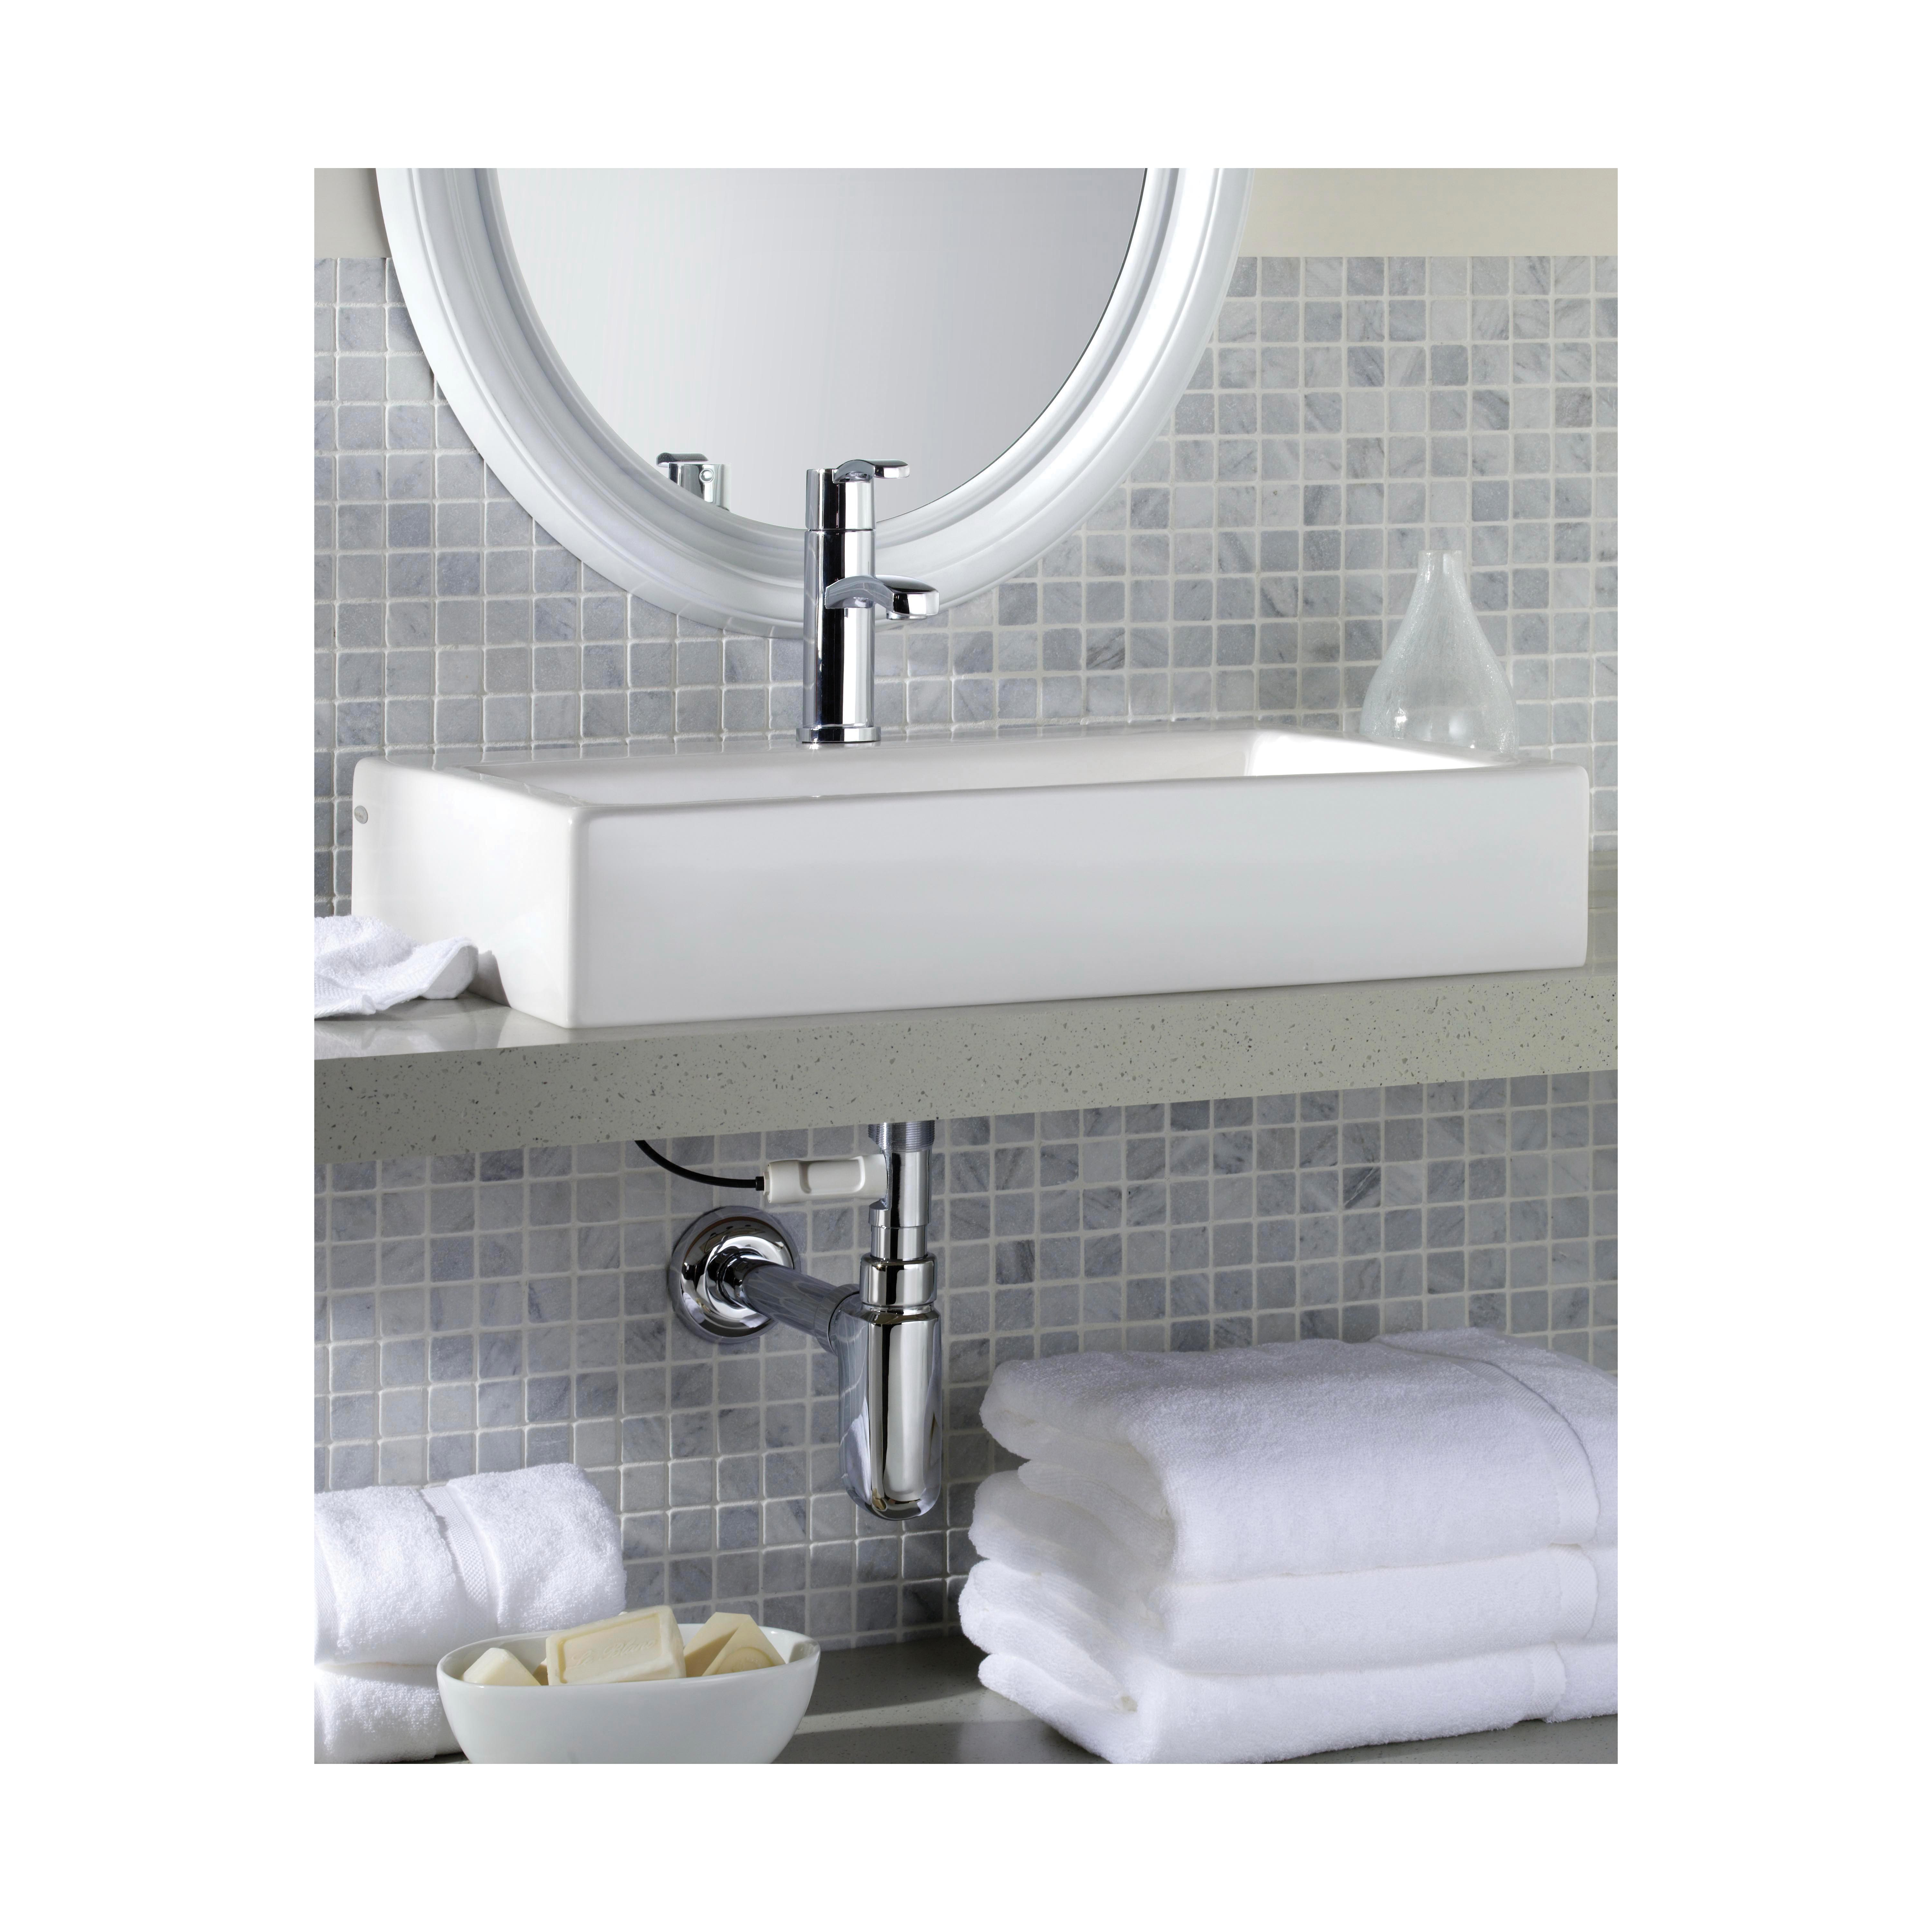 American Standard 0621.001.020 Studio™ Suite Lavatory Sink With Rear Overflow, Rectangular, 22 in W x 4-1/2 in D x 18-1/2 in H, Above Counter Mount, Vitreous China, White, Import